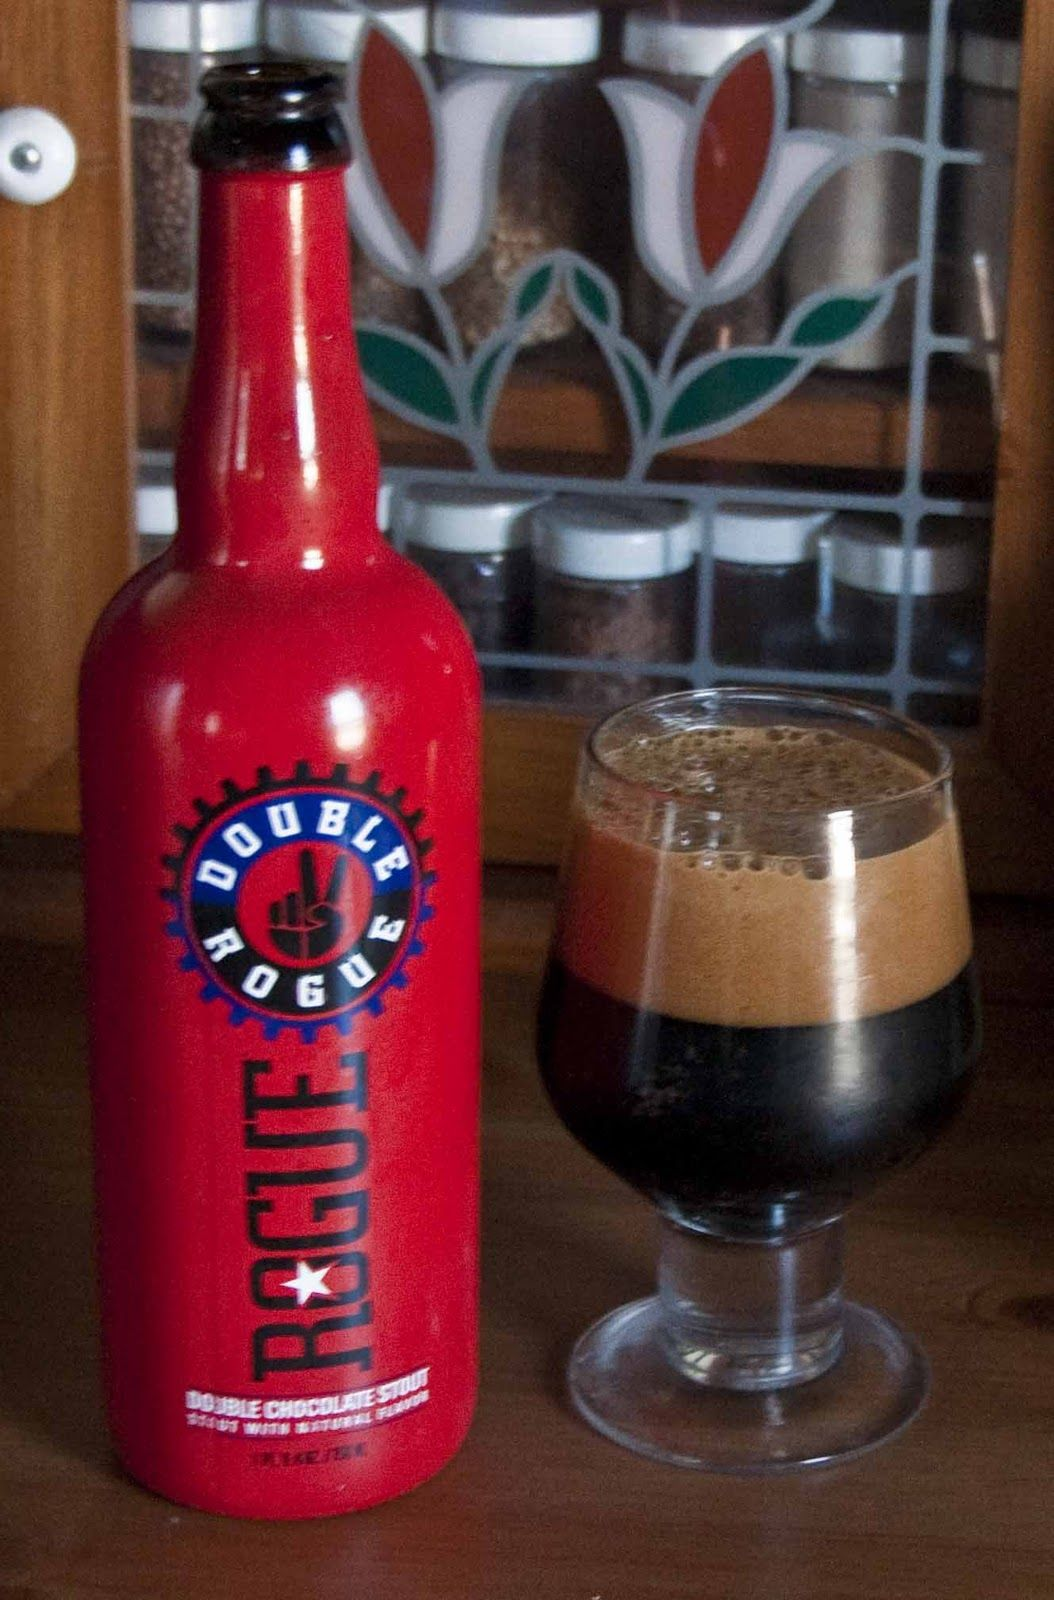 Rouge Double Chocolate Stout Double Chocolate Stout Chocolate Stout Craft Beer